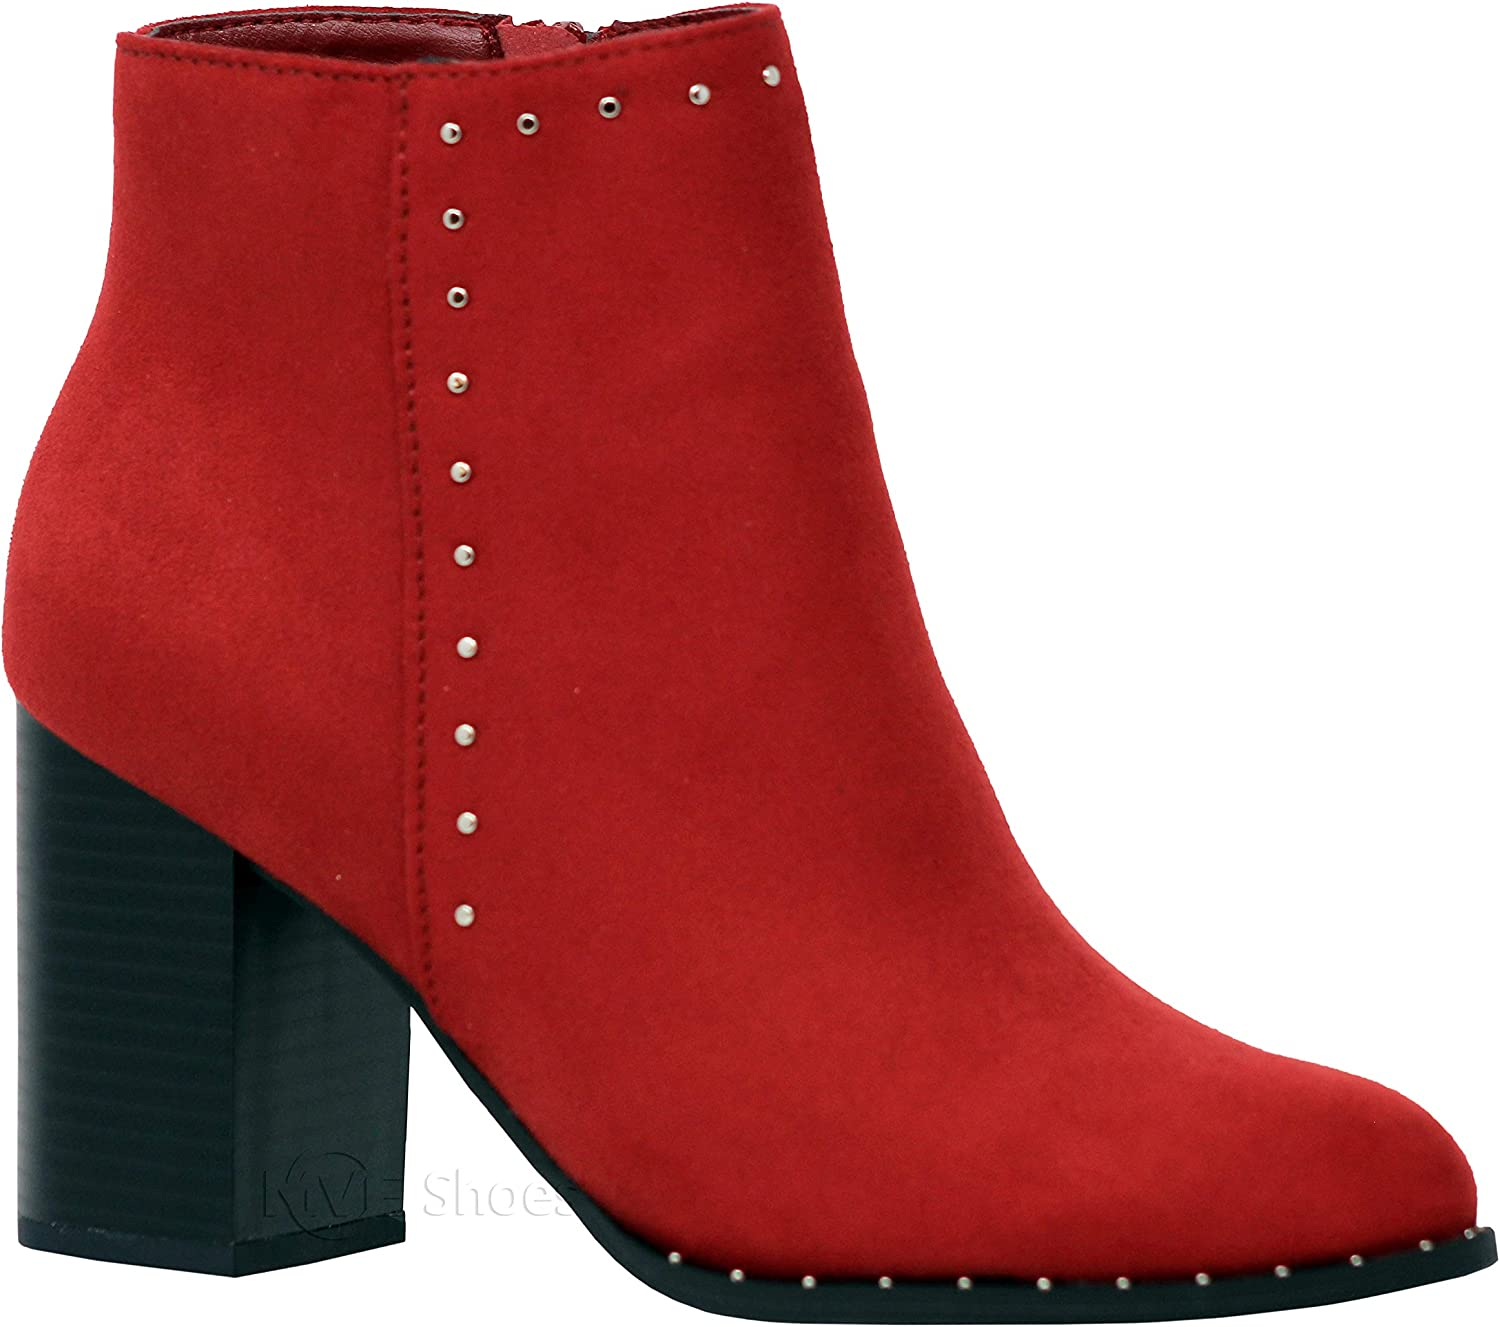 MVE Shoes Womens Stylish Comfortable Low Chunky Cutout Pointed Toe Heel Ankle Boot